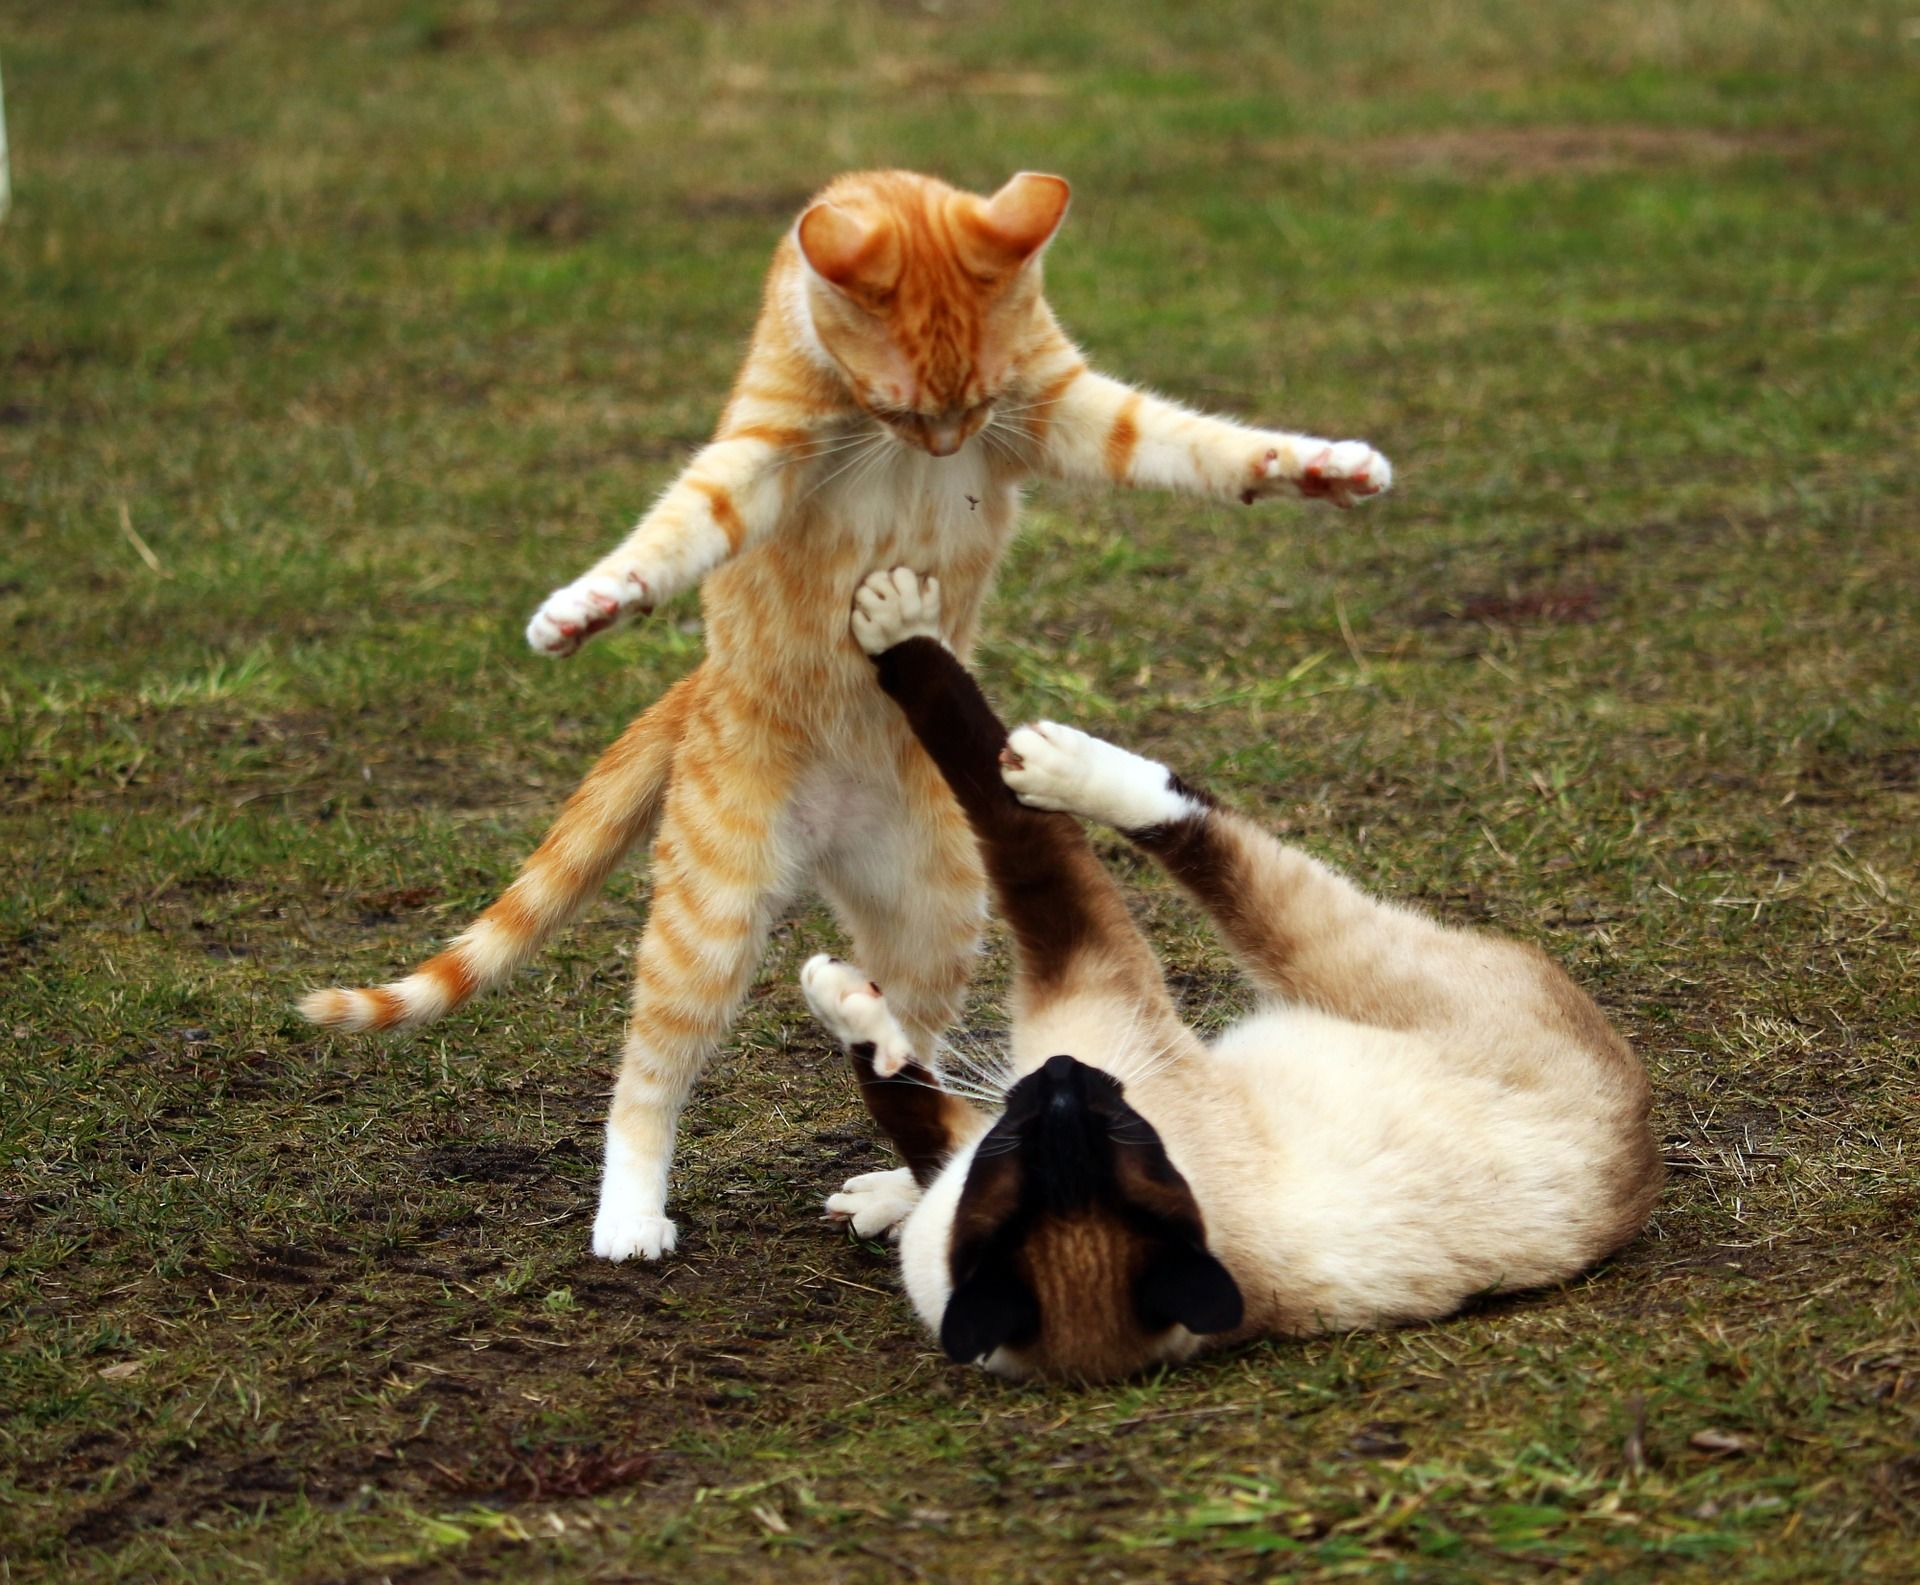 I M Wondering How To Stop My Cats From Fighting Each Other Healthcare For Pets Tabby Kitten Cat Playing Funny Cats